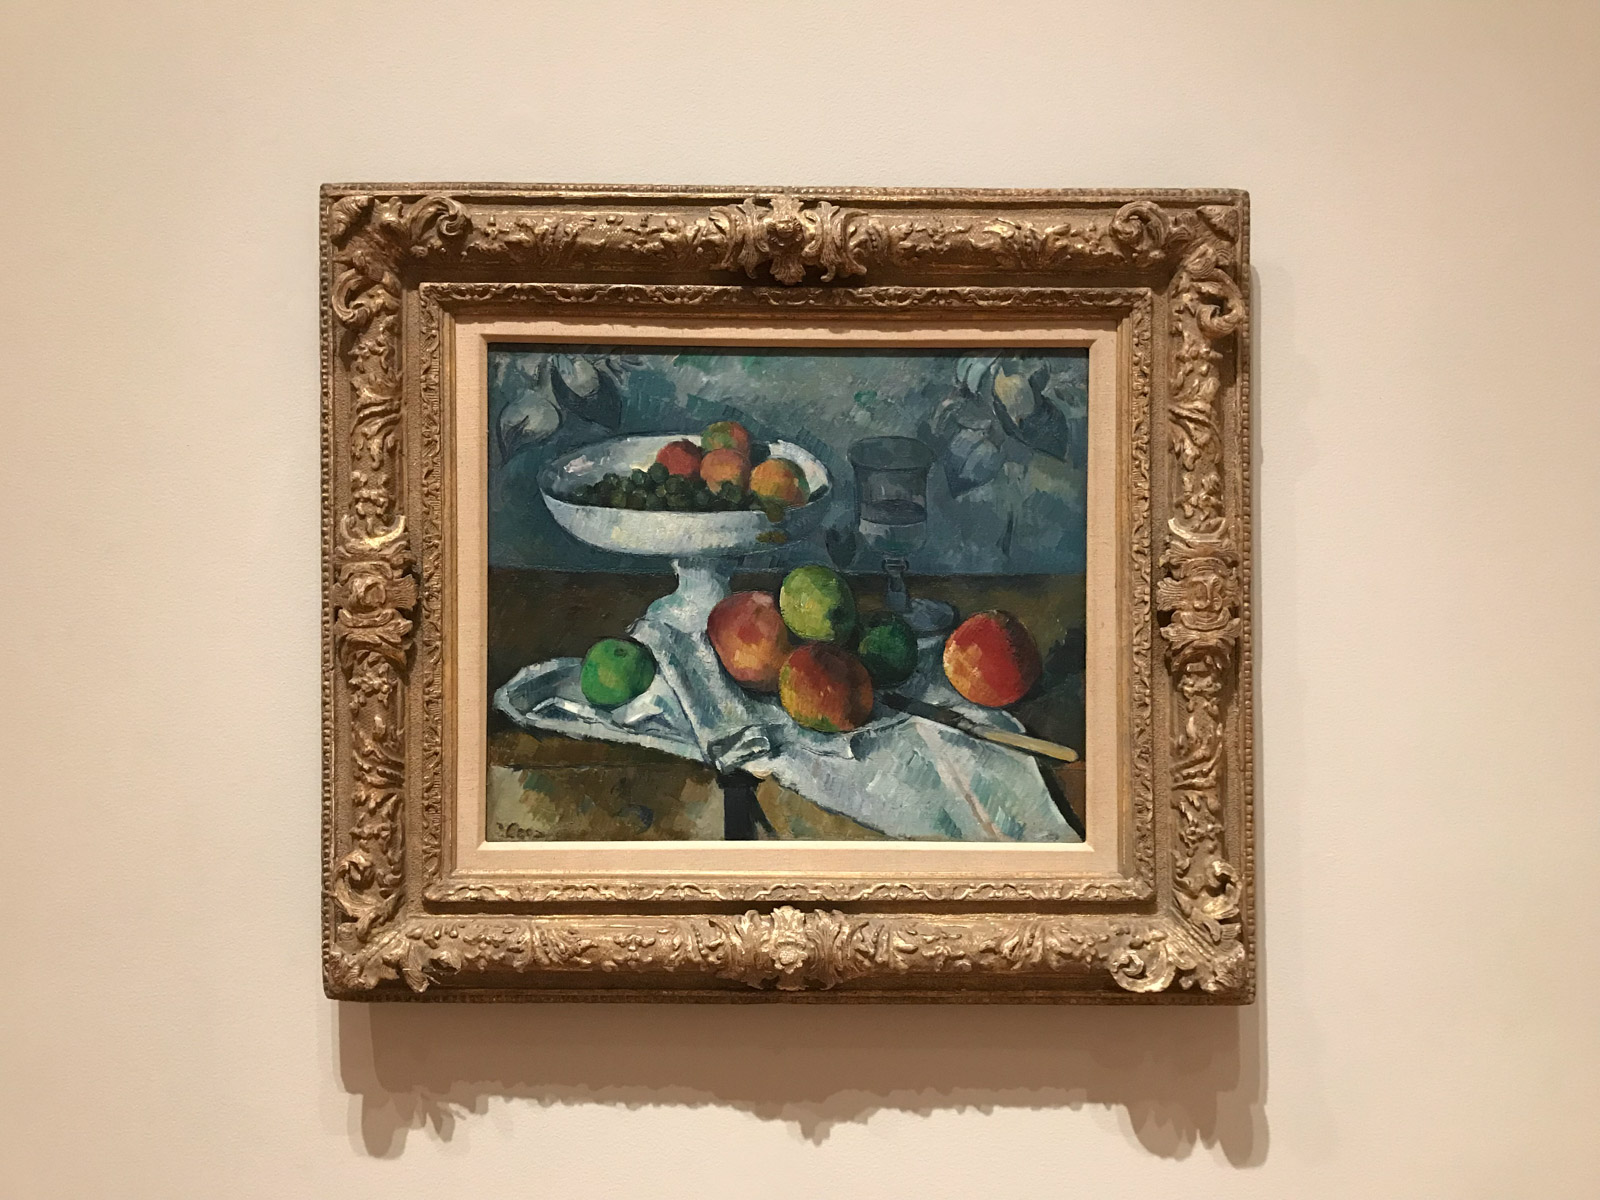 A framed painting of a bowl of apples, with some apples on the surface underneath